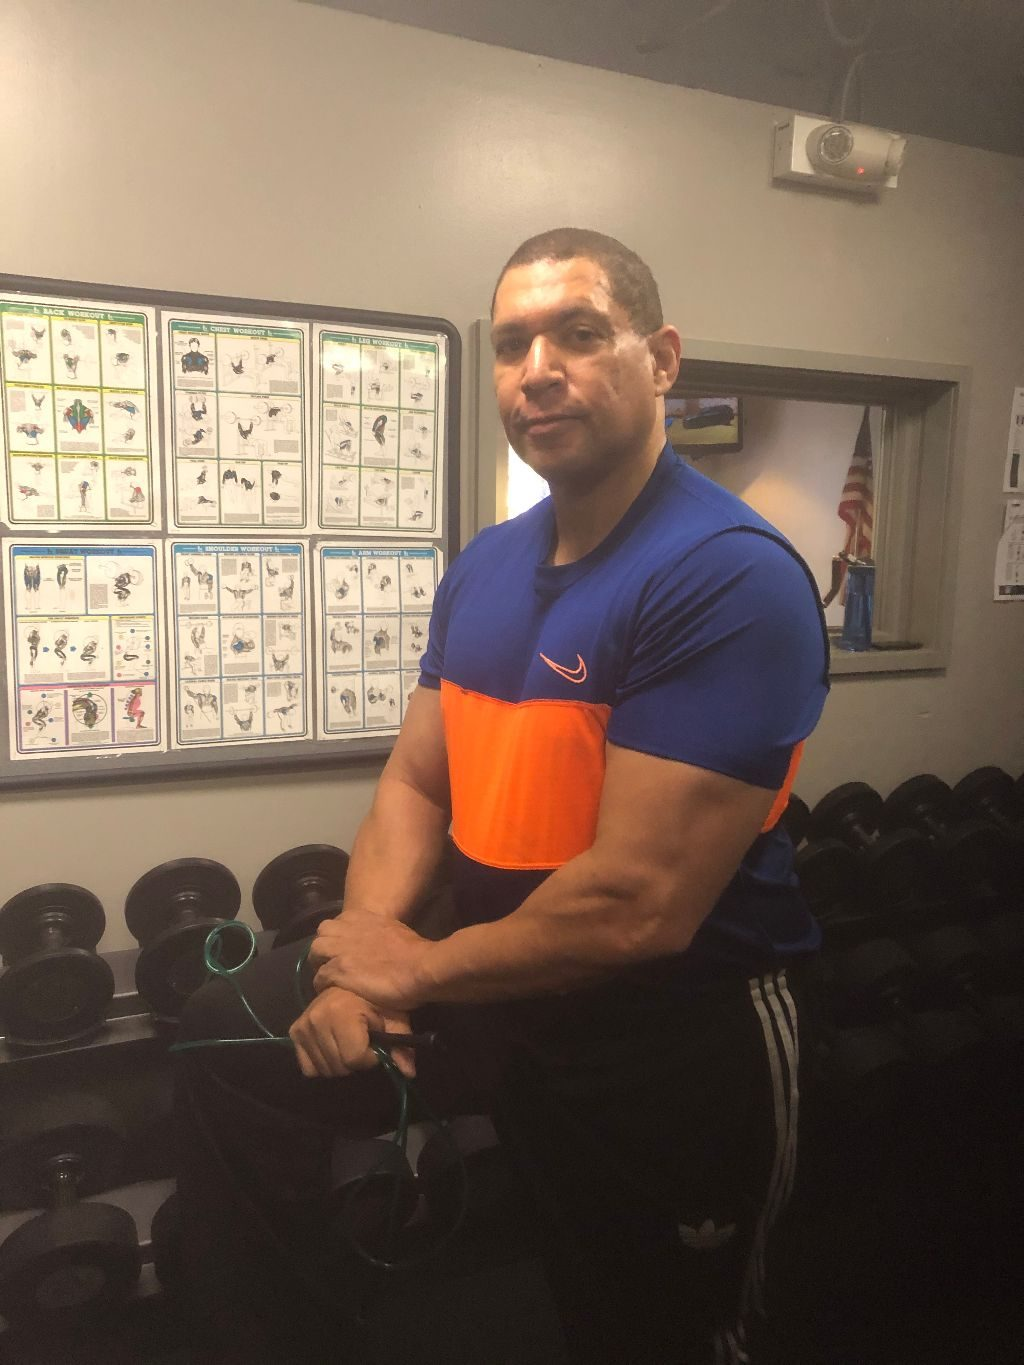 Personal Trainer Orland-hills, Illinois - Roger Bradley